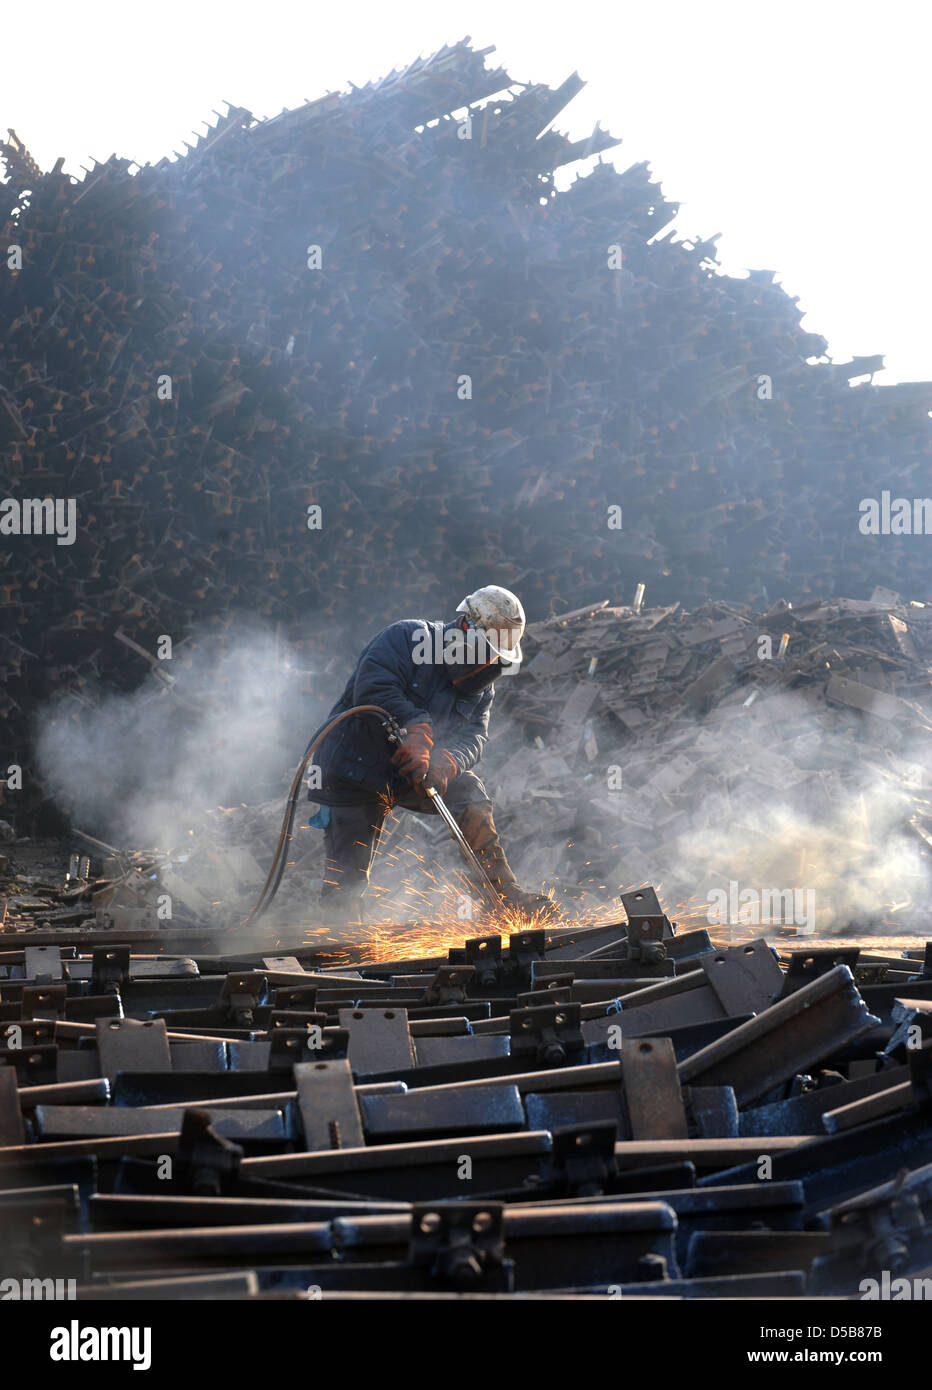 Espenhain, Germany, workers dismantled old railroad tracks - Stock Image